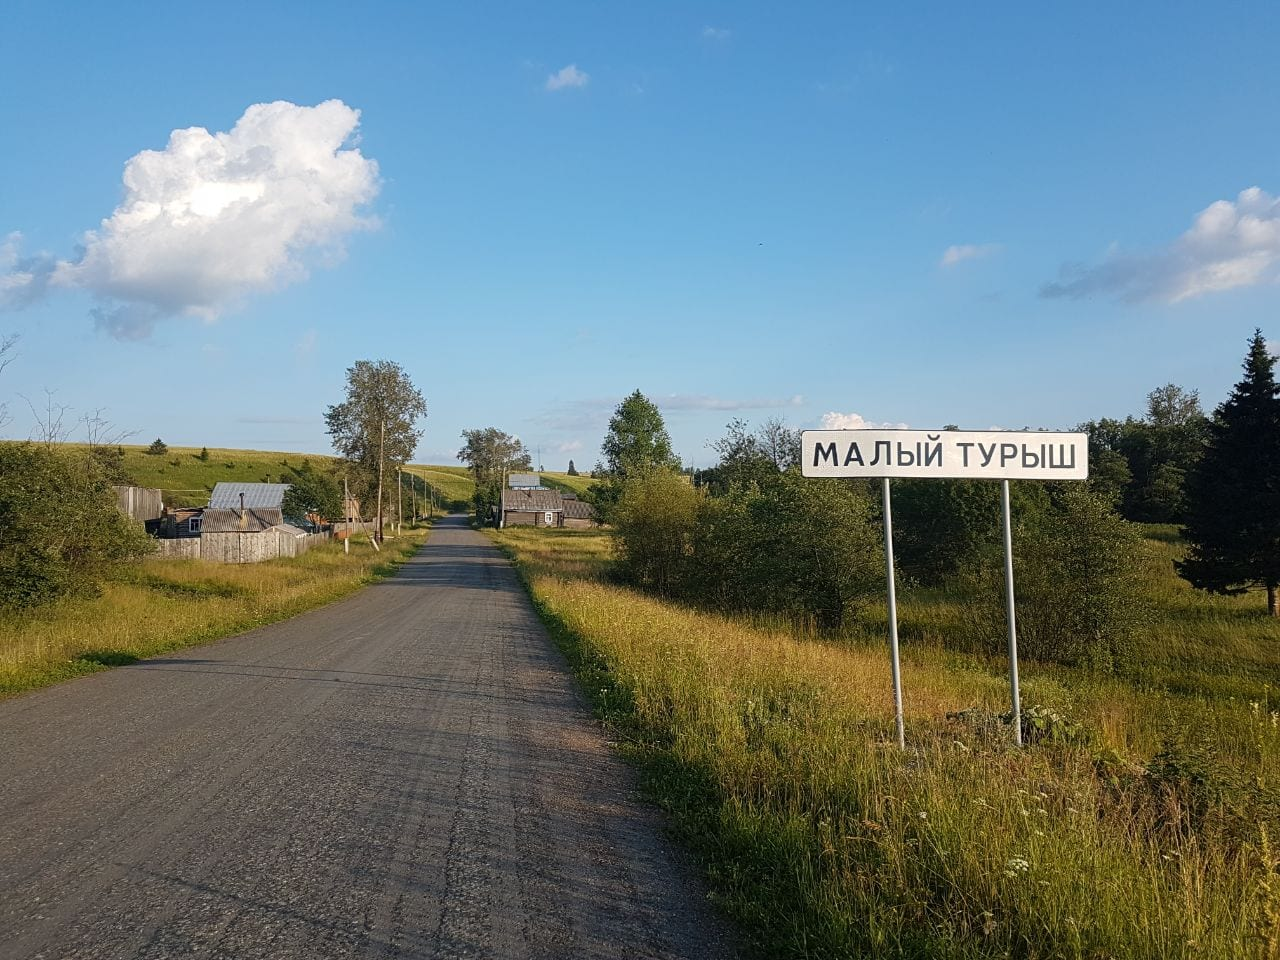 Typical Russian village